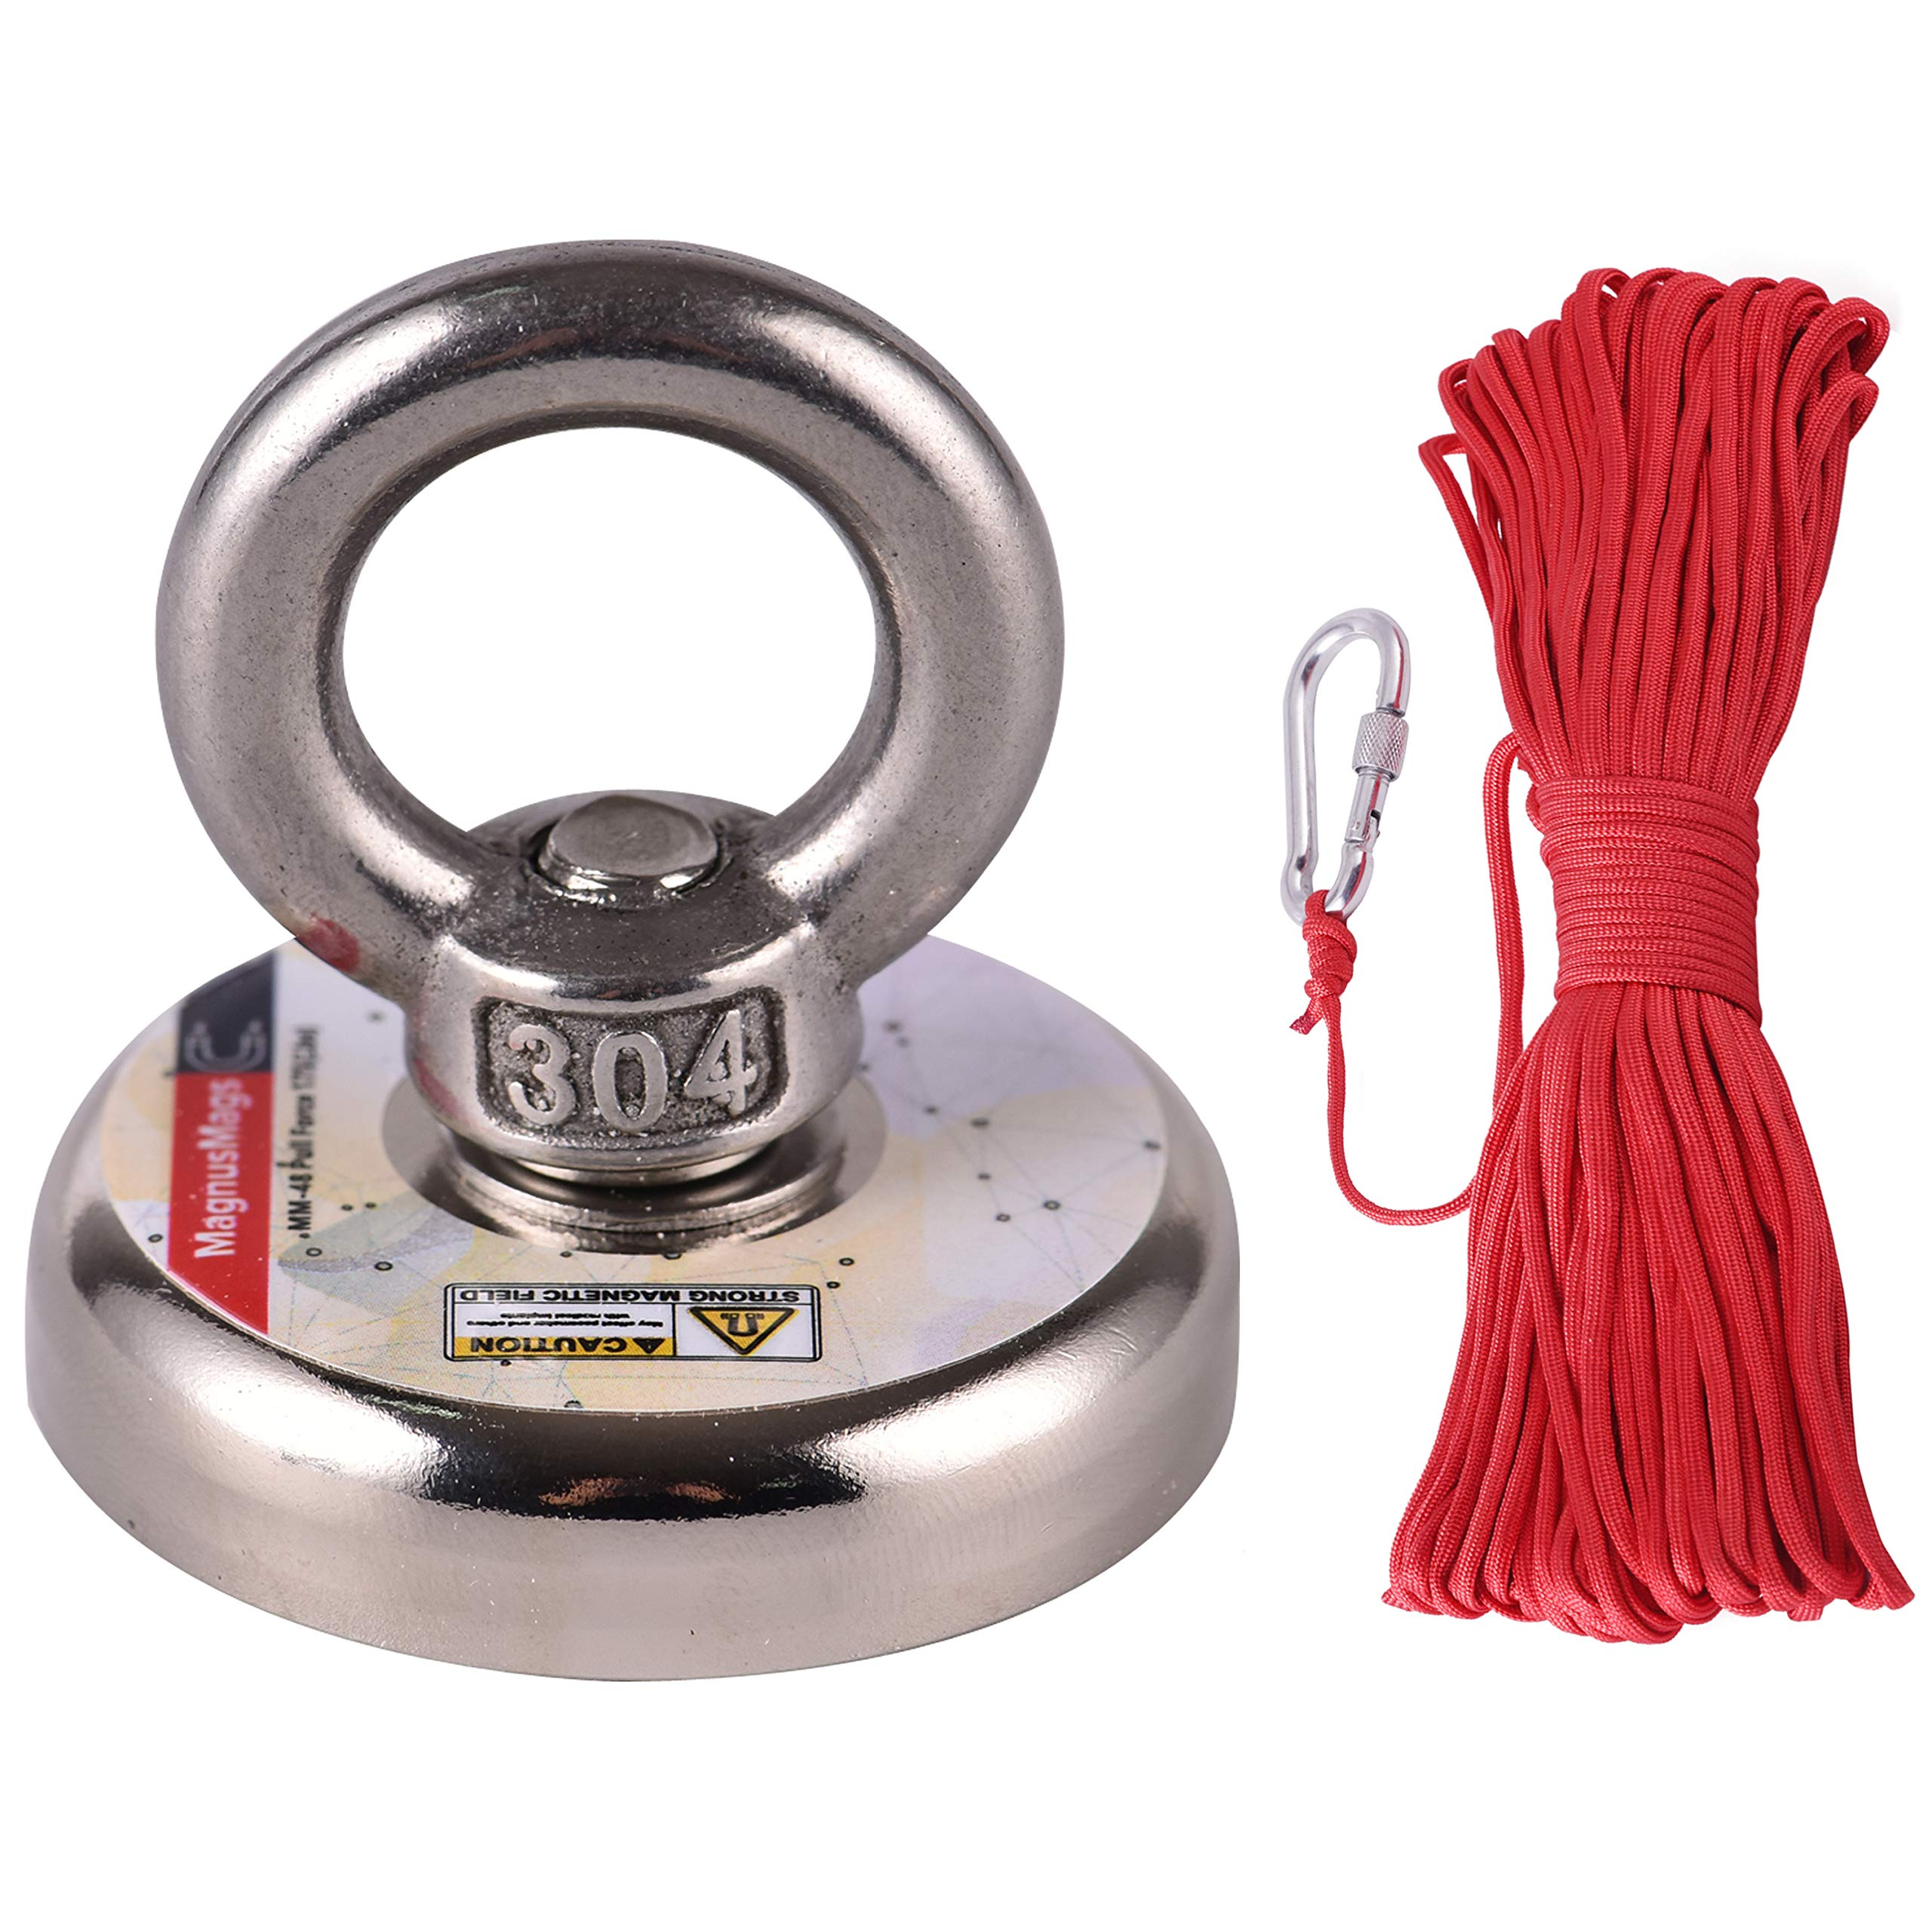 Powerful Fishing Magnets with Rope x 66ft, MagnusMags 175LBS(79KG) Super Strong Pulling Force Neodymium Rare Earth Magnet Fishing Kit - 1.89'' Diameter Heavy Duty Magnet with Rope and Carabiner